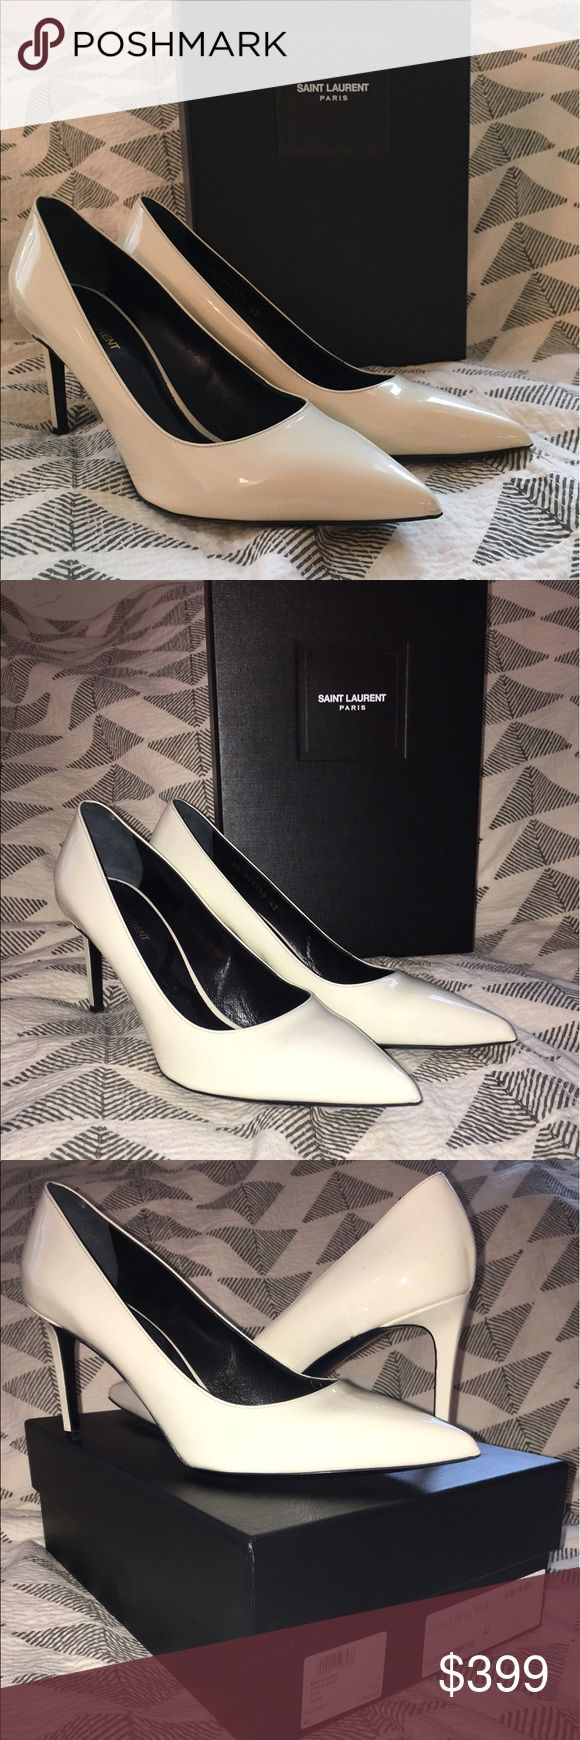 Saint Laurent White Patent Paris 80 Pump Super sexy, not too high uber cool. Think Gwen Stefani, Rihanna. Hate to be cliche but I can't wear these now that I've had a baby! Saint Laurent Shoes Heels